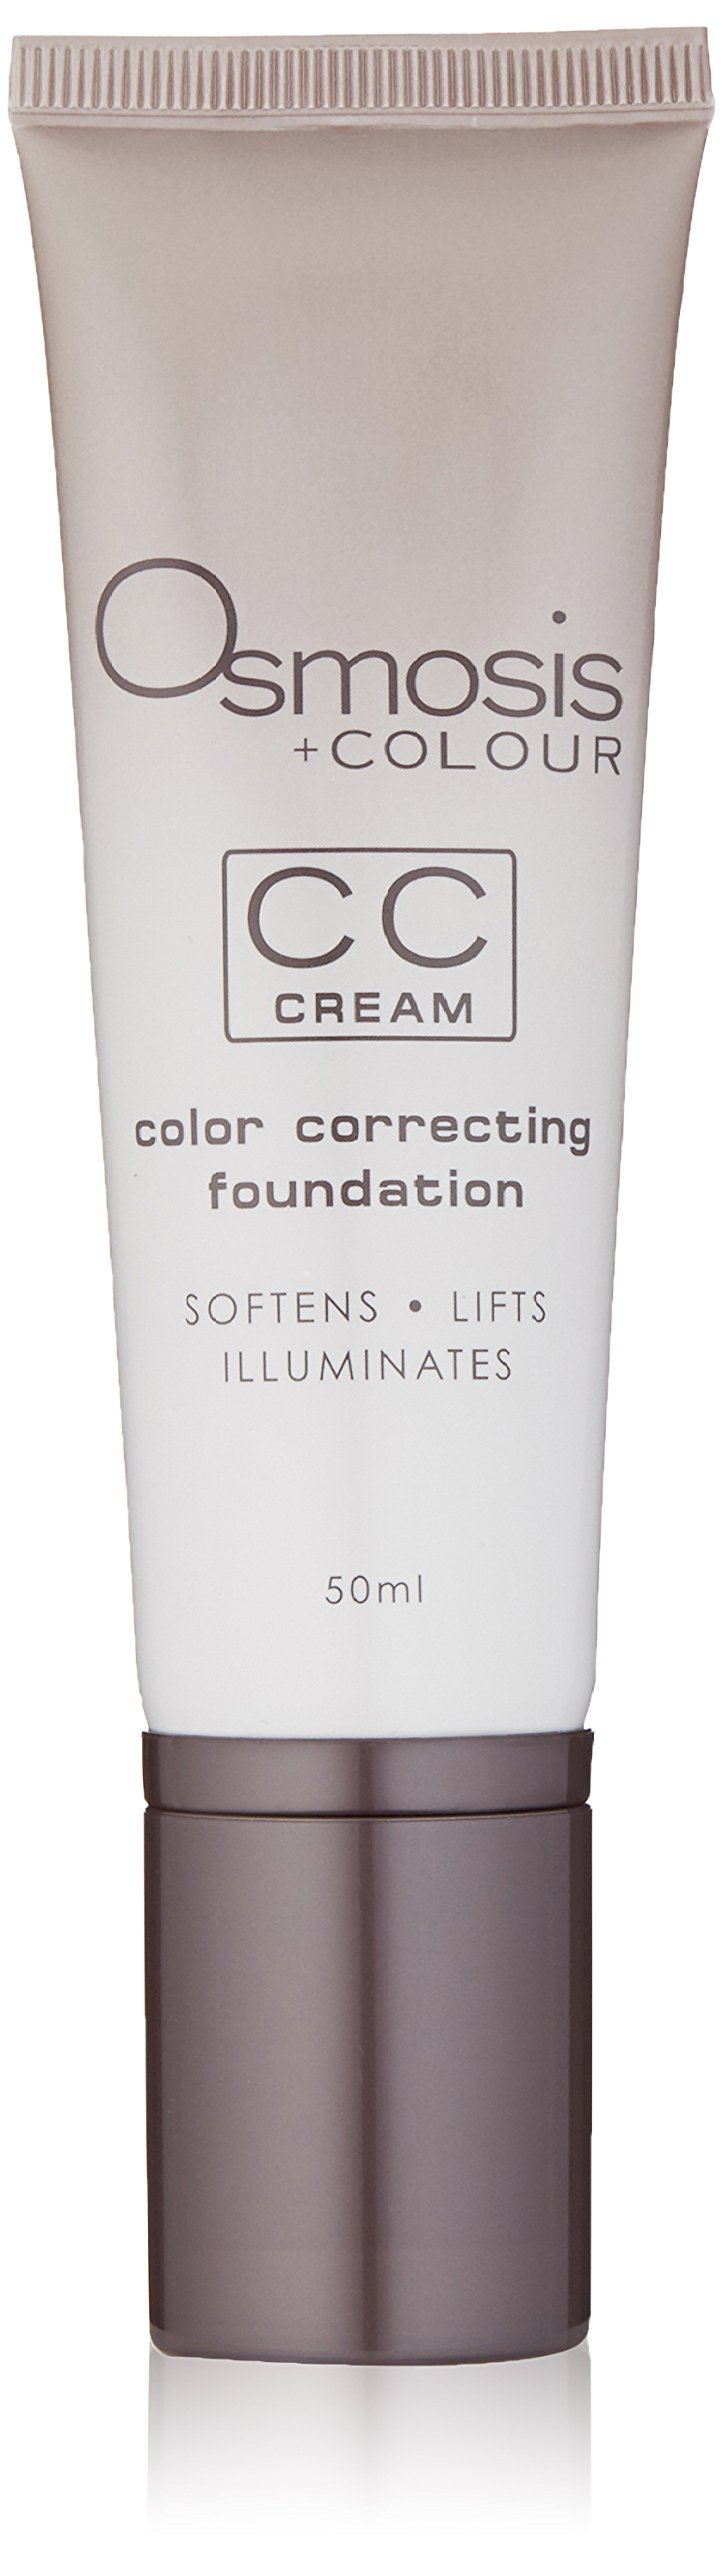 Osmosis Skincare Colour CC Cream, Neutral